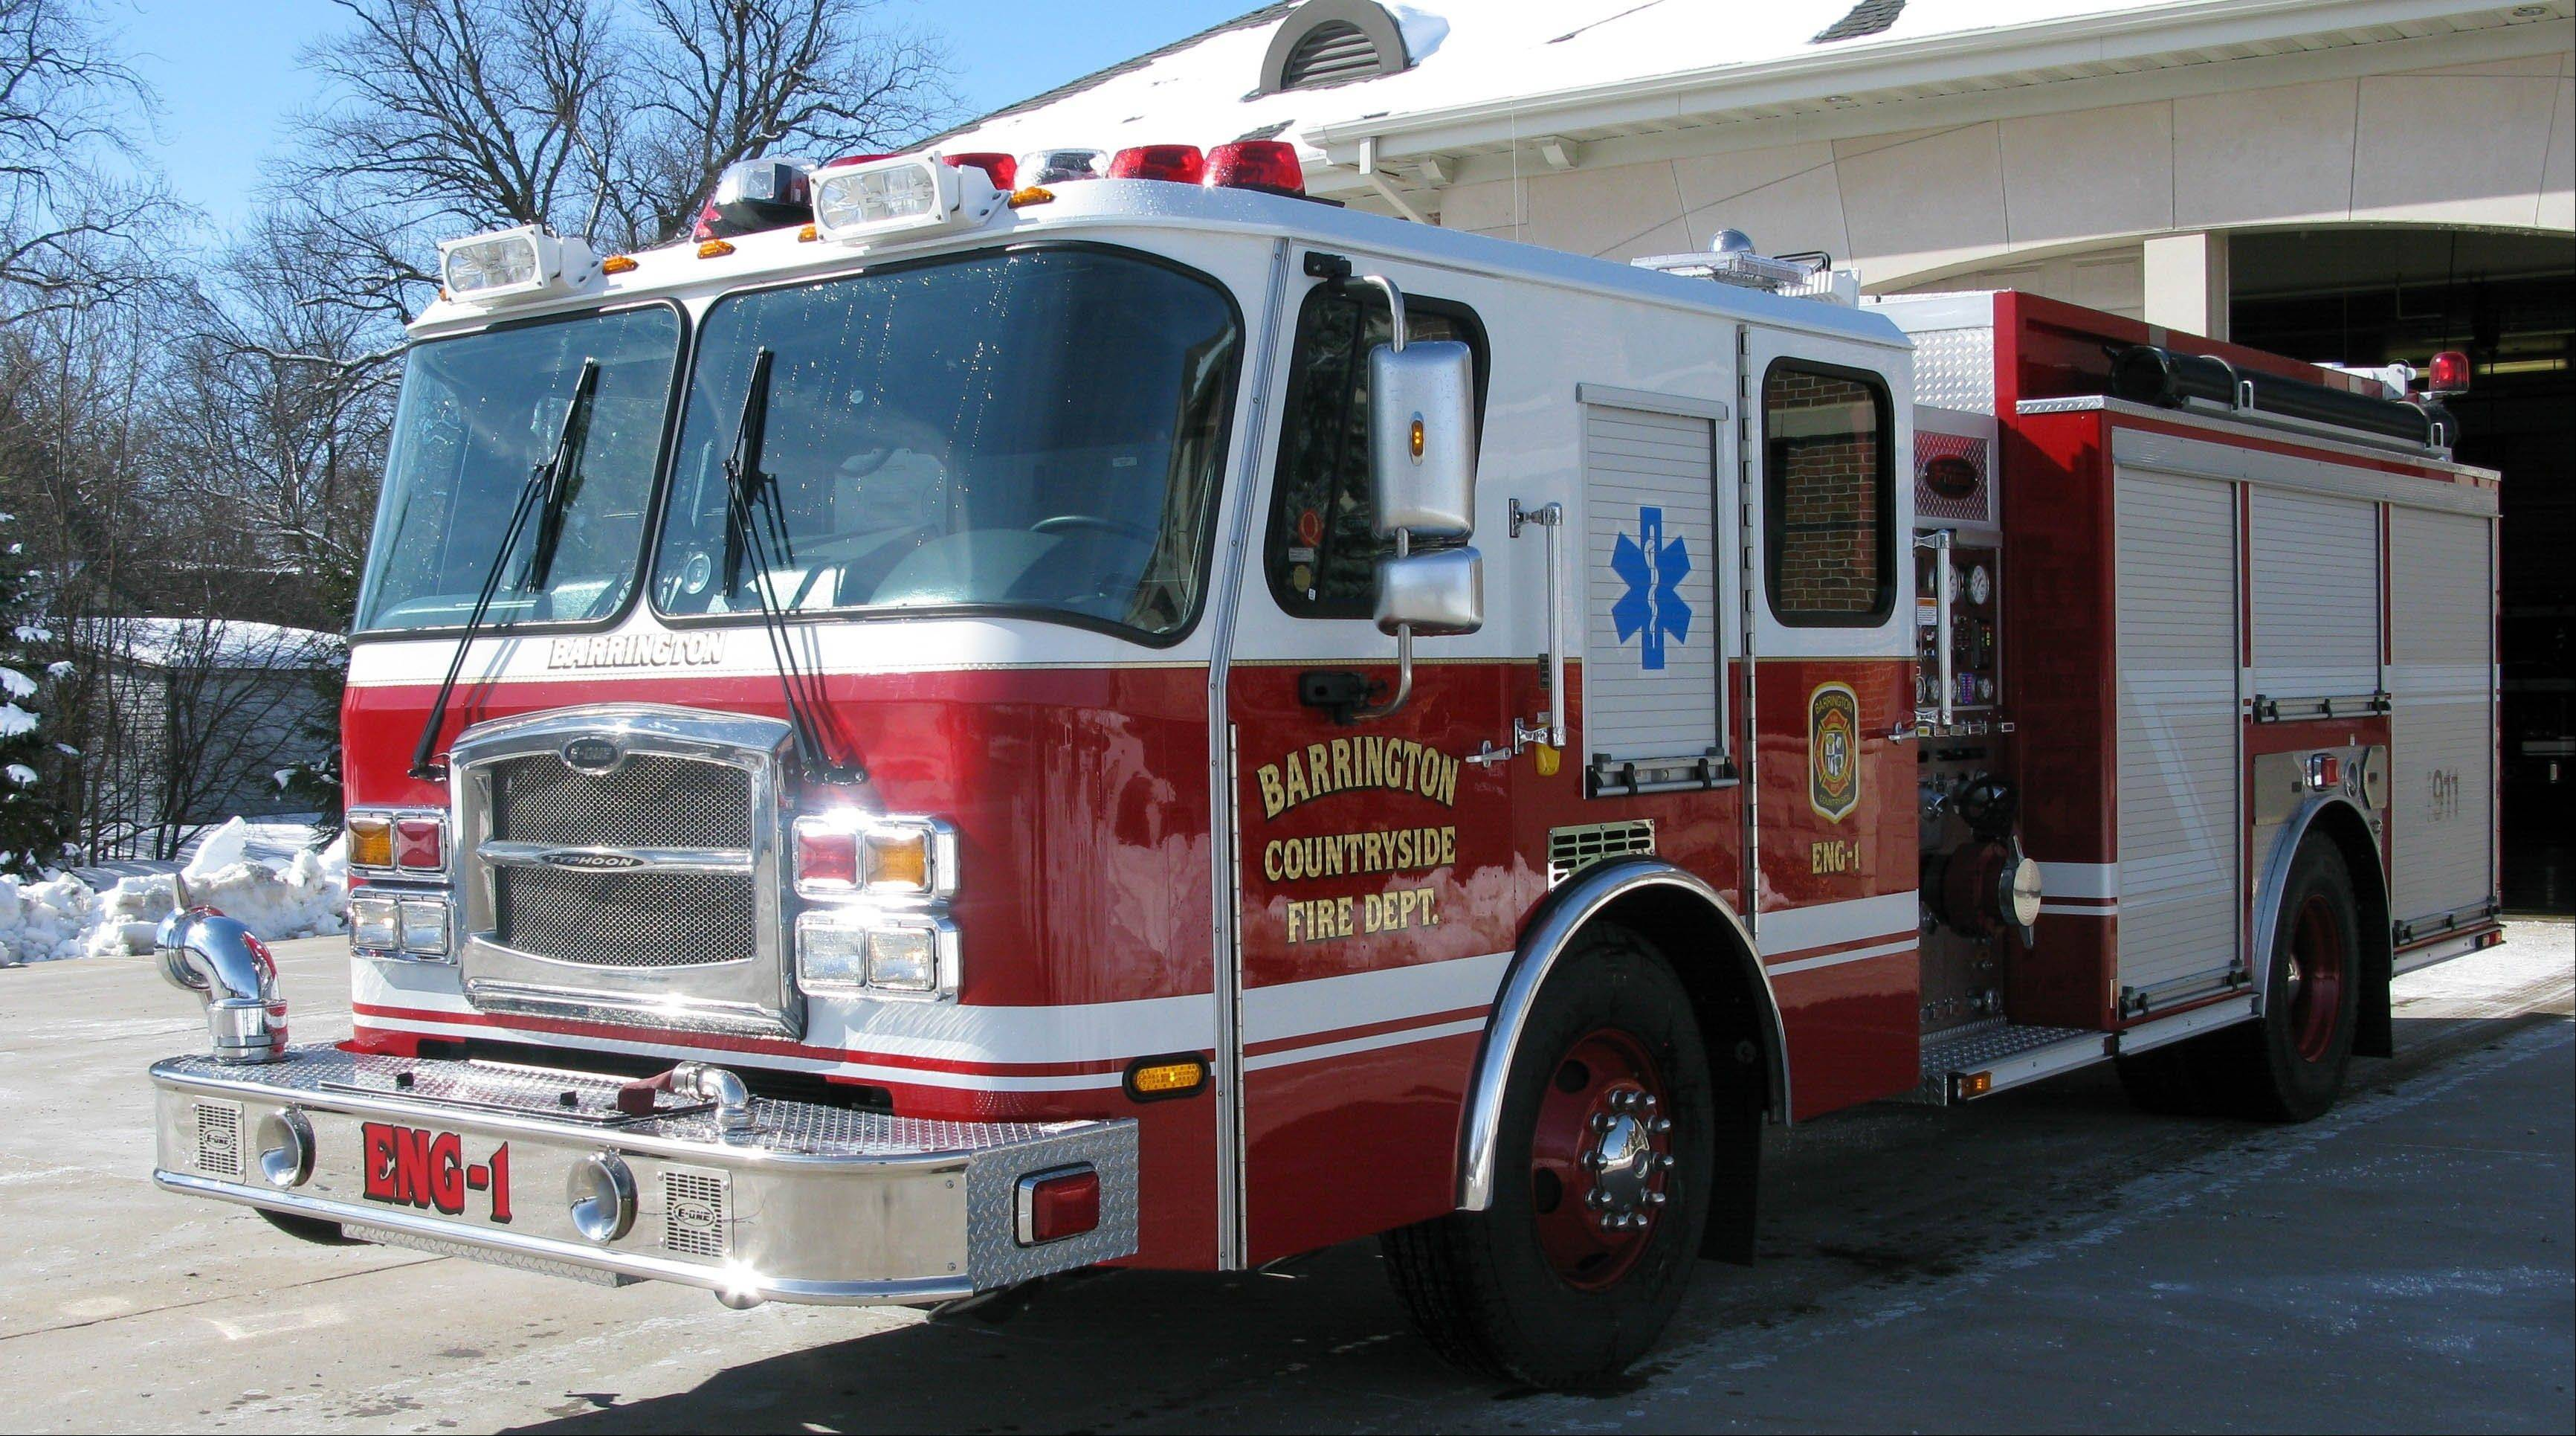 Auto-aid deal still eludes Barrington, fire district